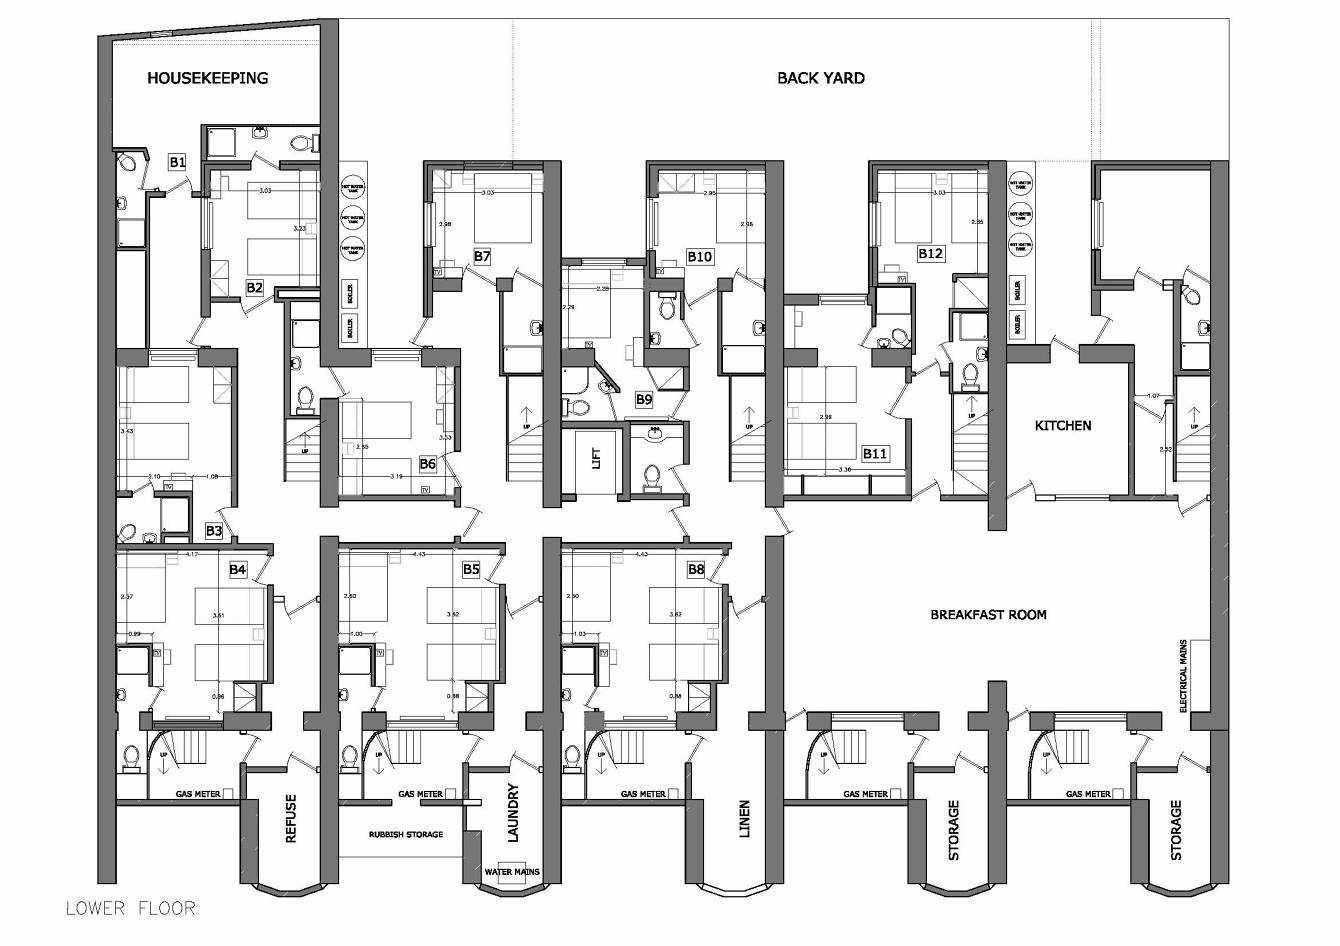 London House Hotel - archithoughts on old victorian house floor plans, 19th century mansion floor plans, 18 century victorian house plans,